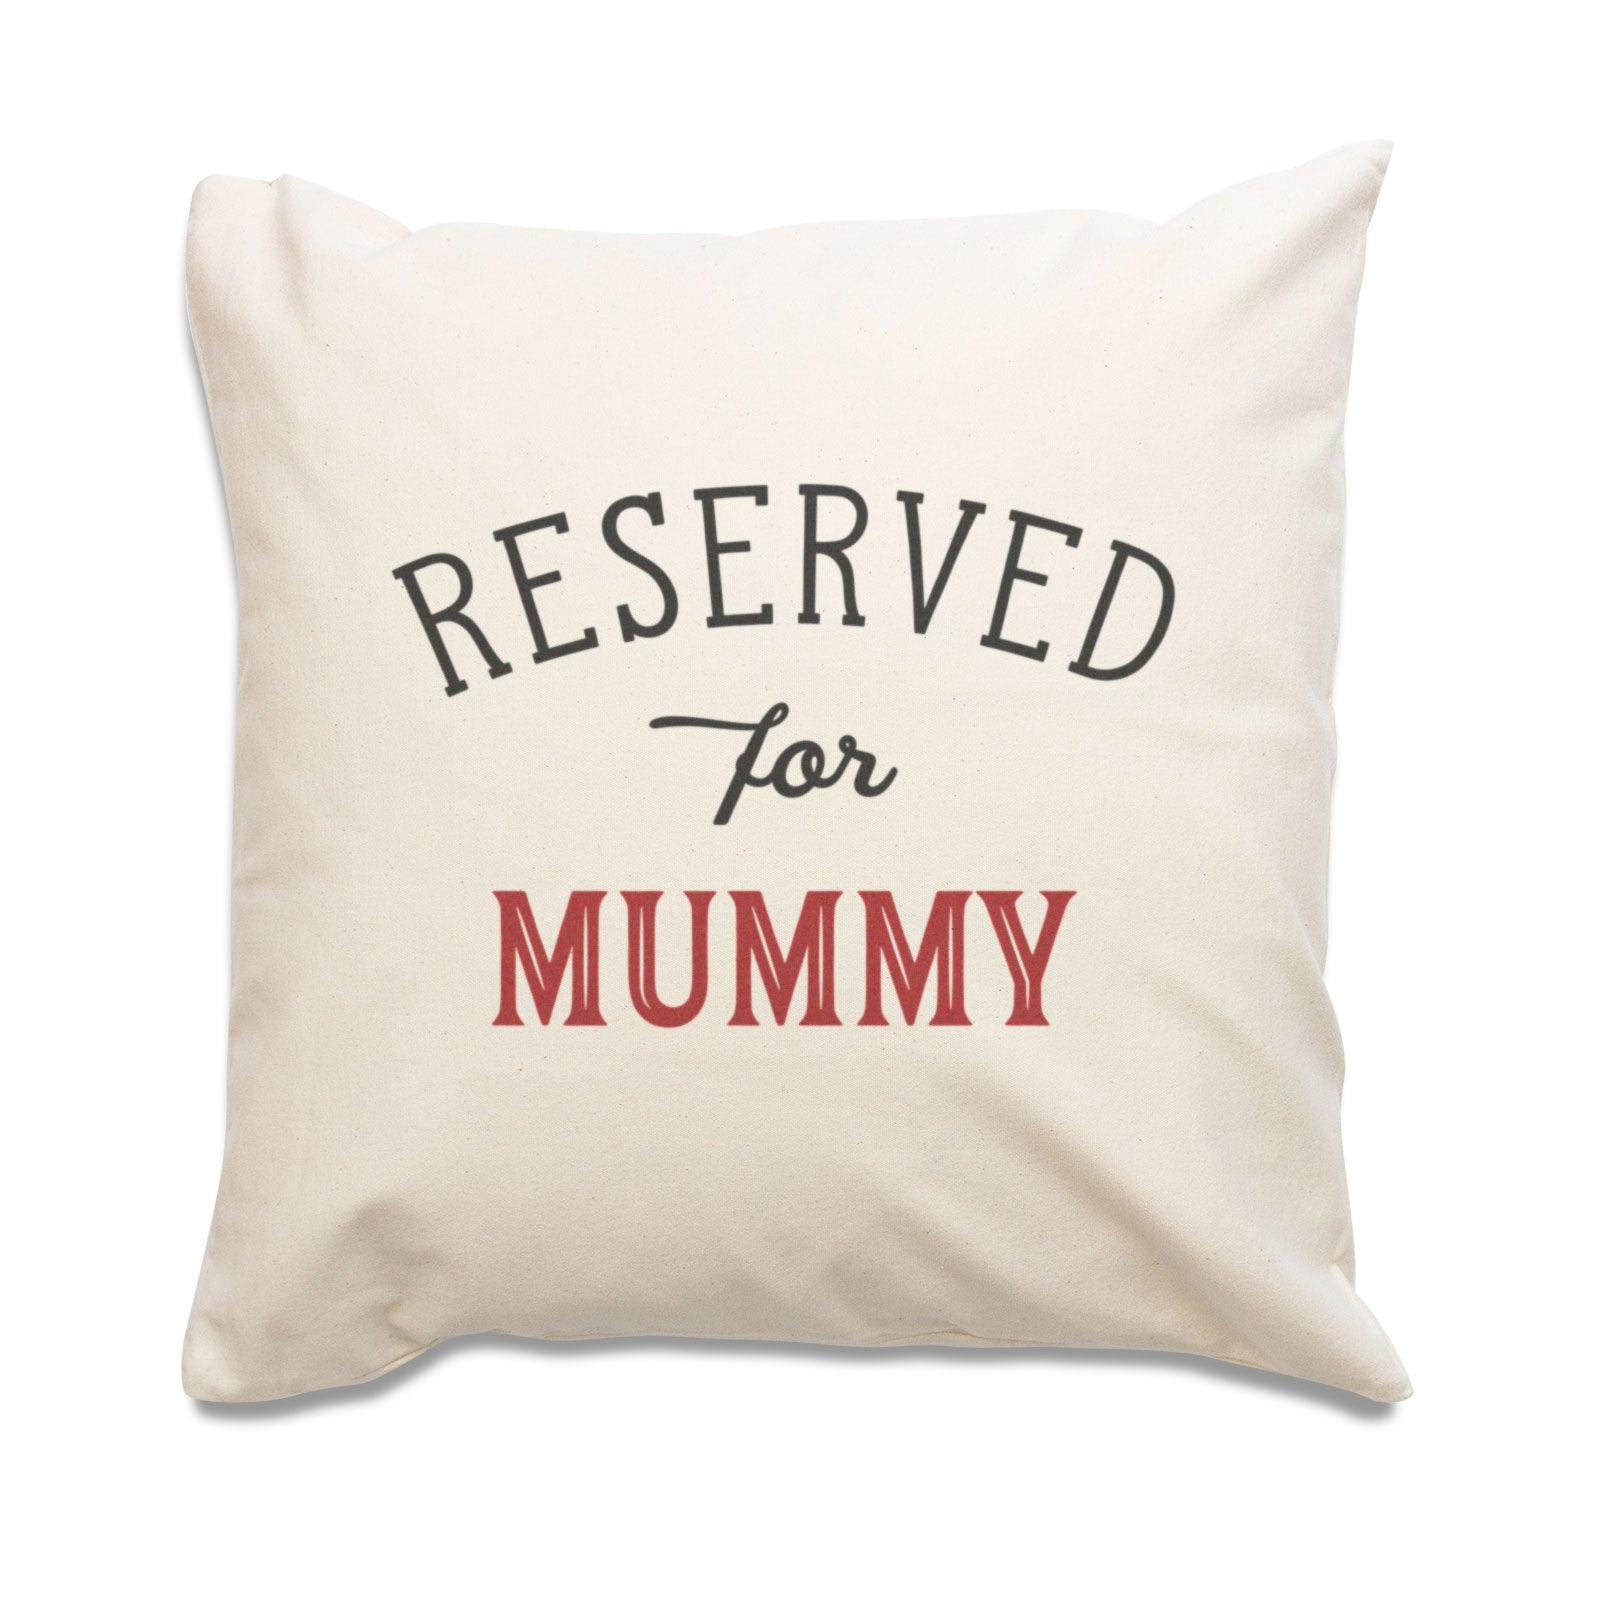 Reserved for Mummy Cushion Cover